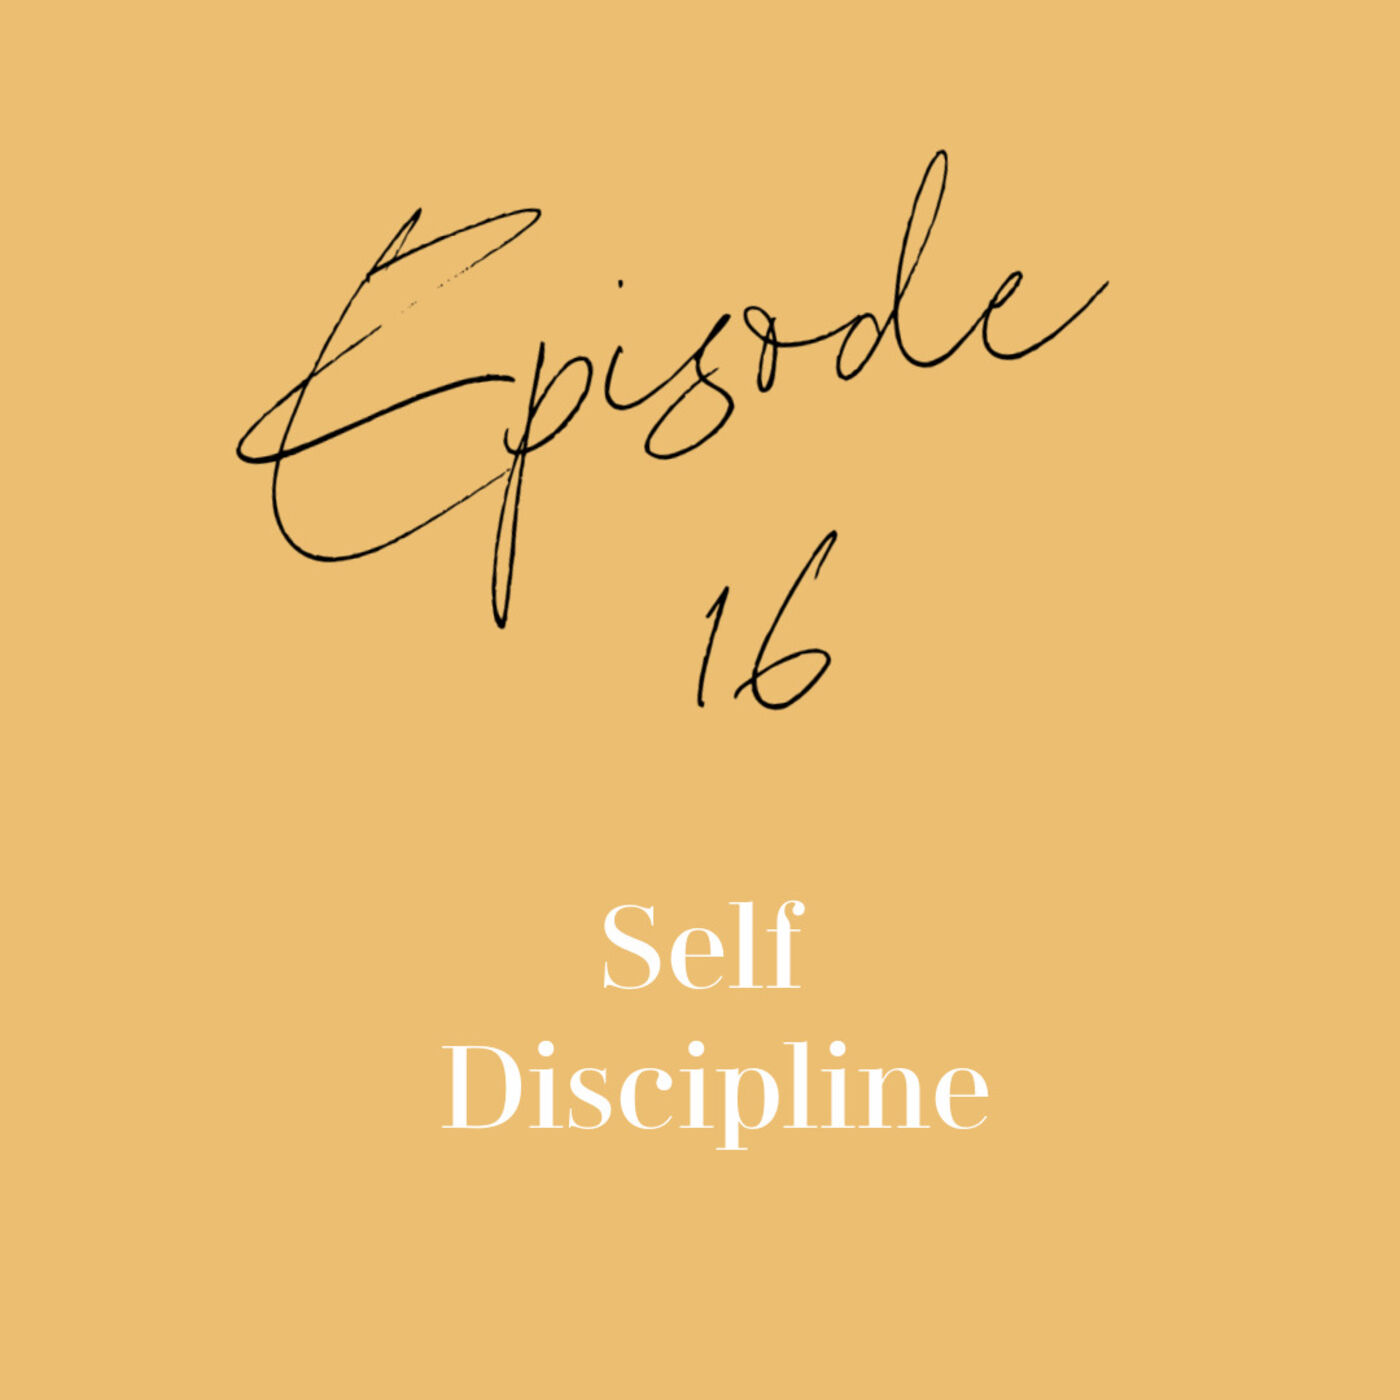 Episode 16: Self Discipline